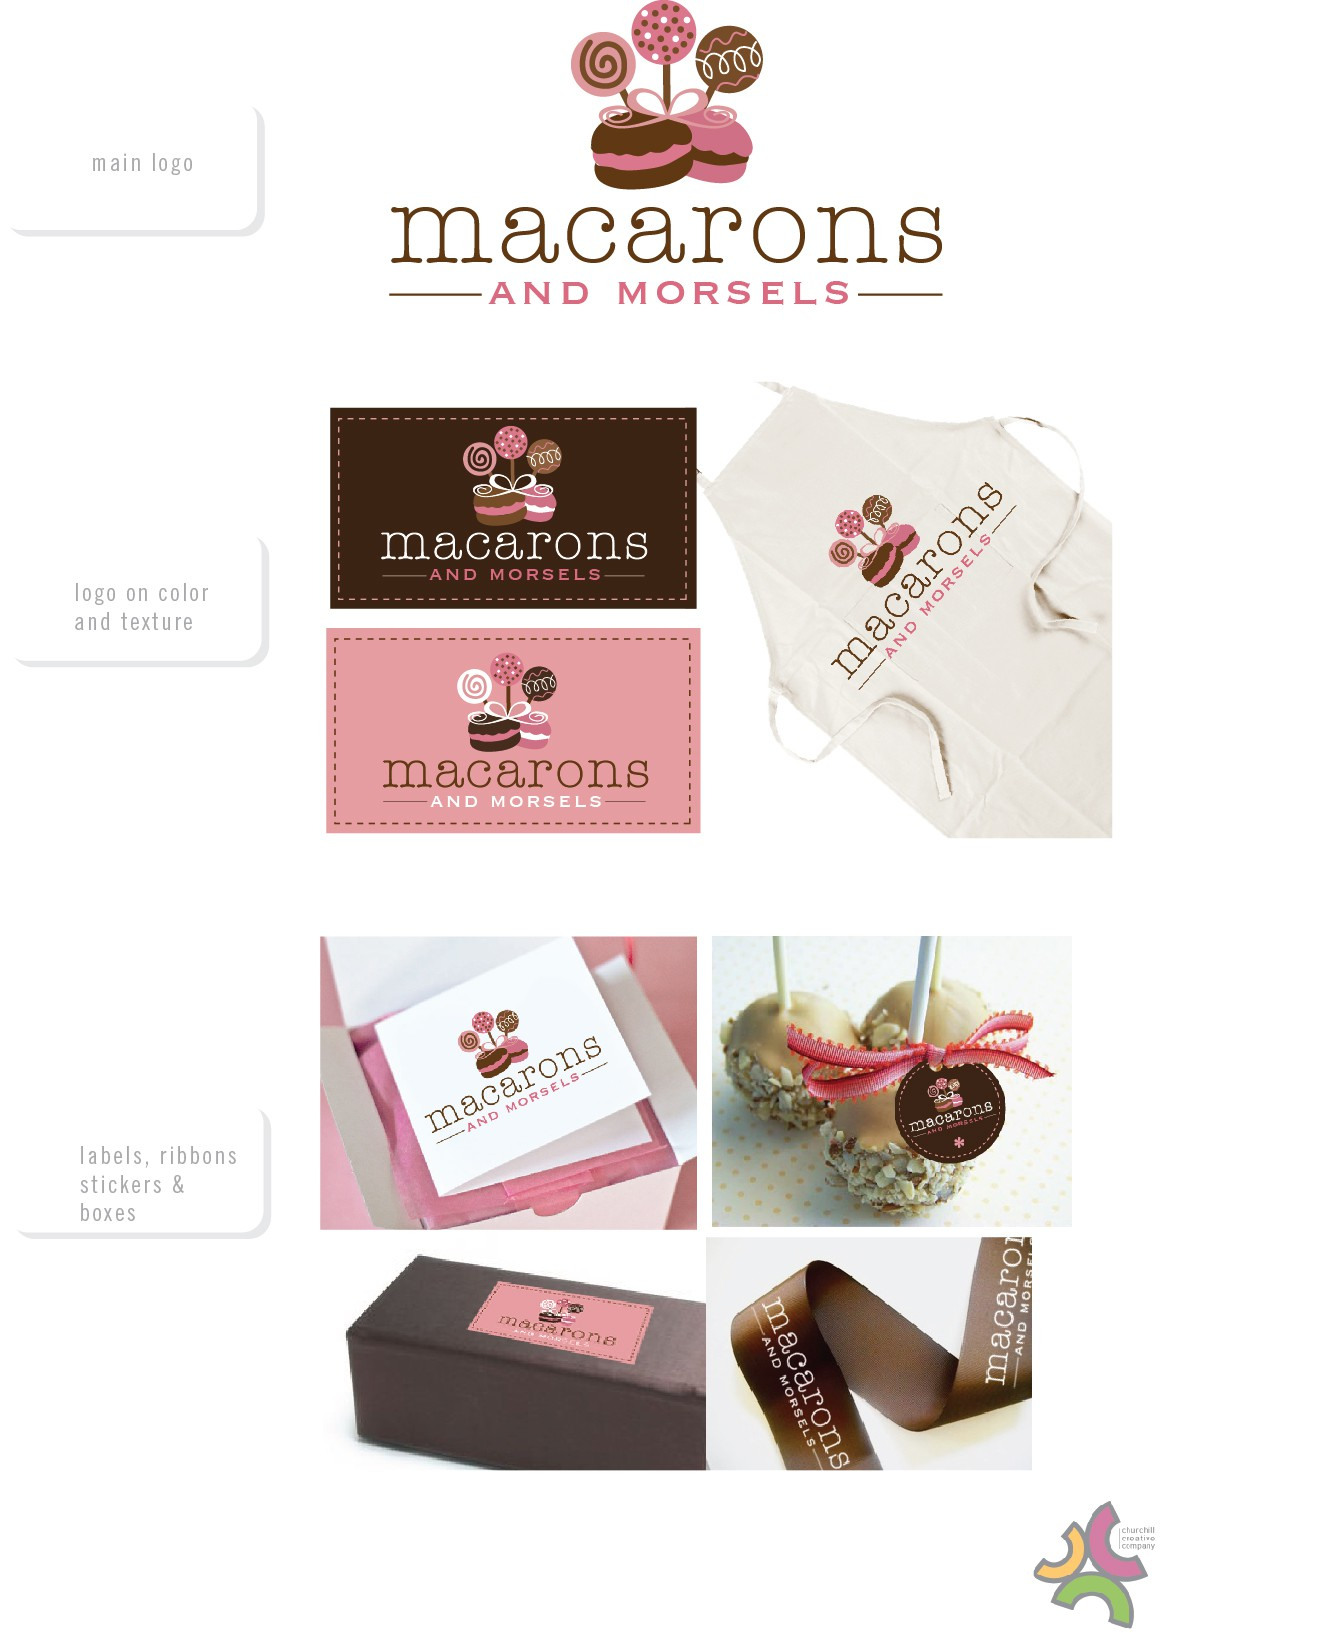 New logo wanted for Macarons and Morsels